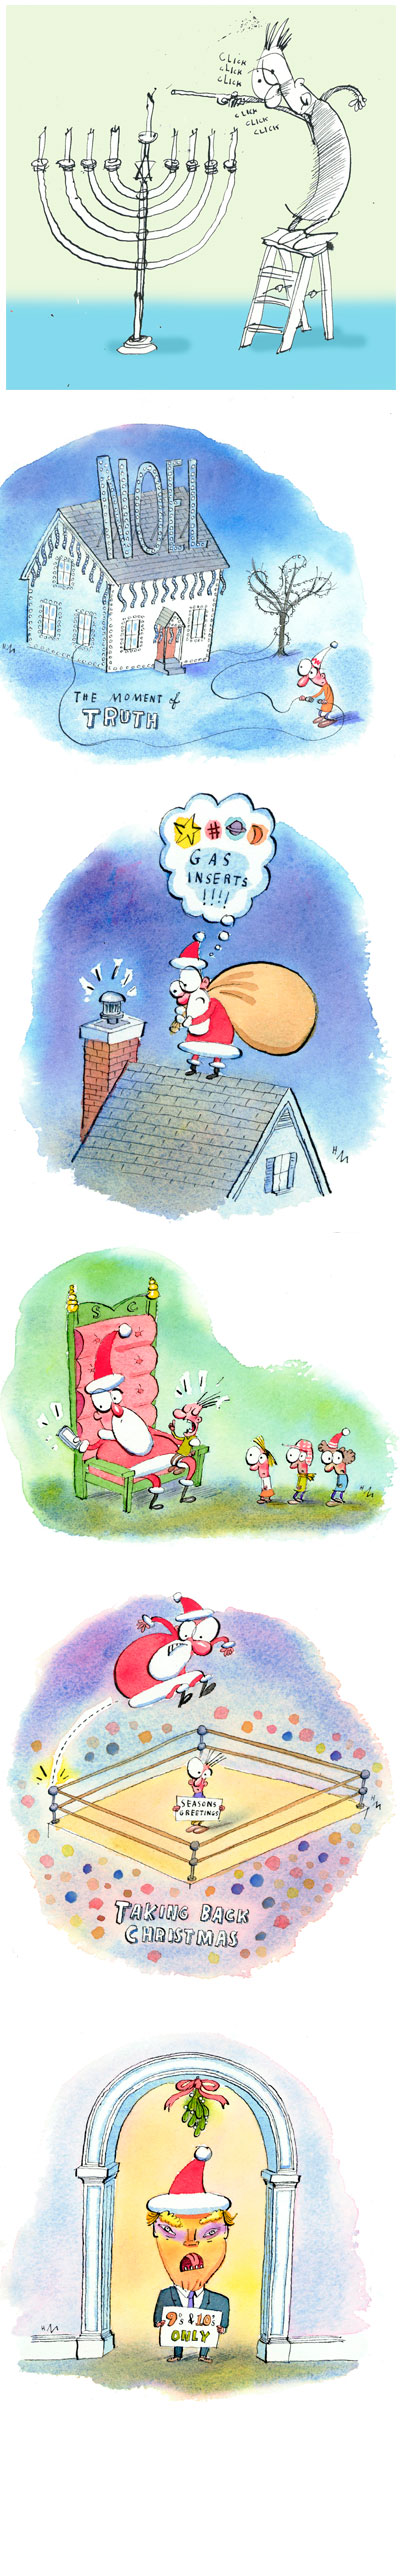 Christmas cards for 2016 - The Boston Globe